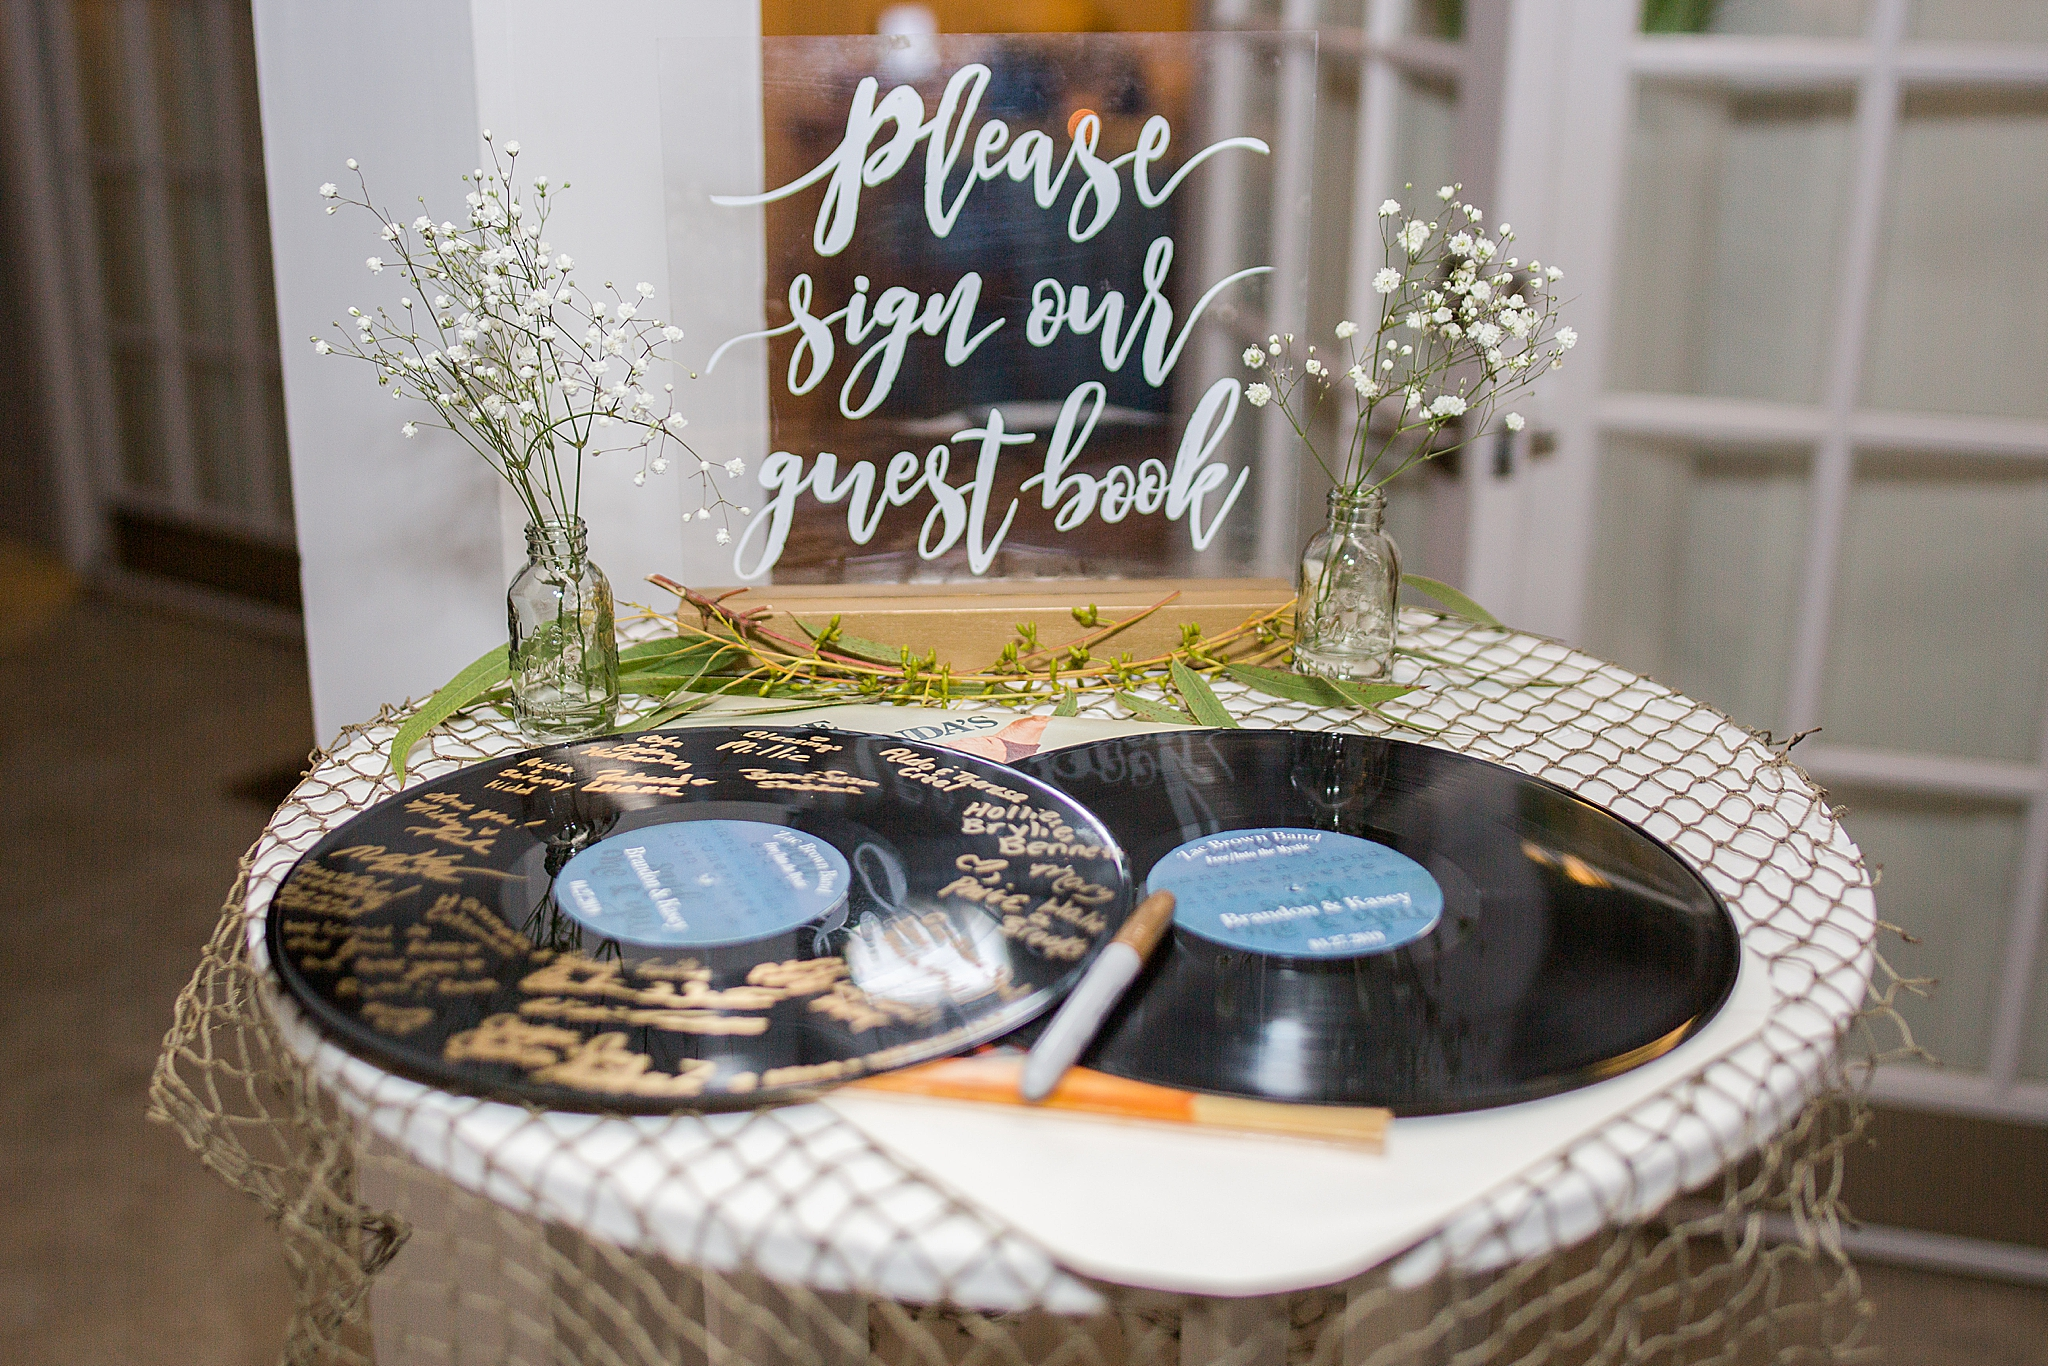 guest book on vintage records for AL wedding reception